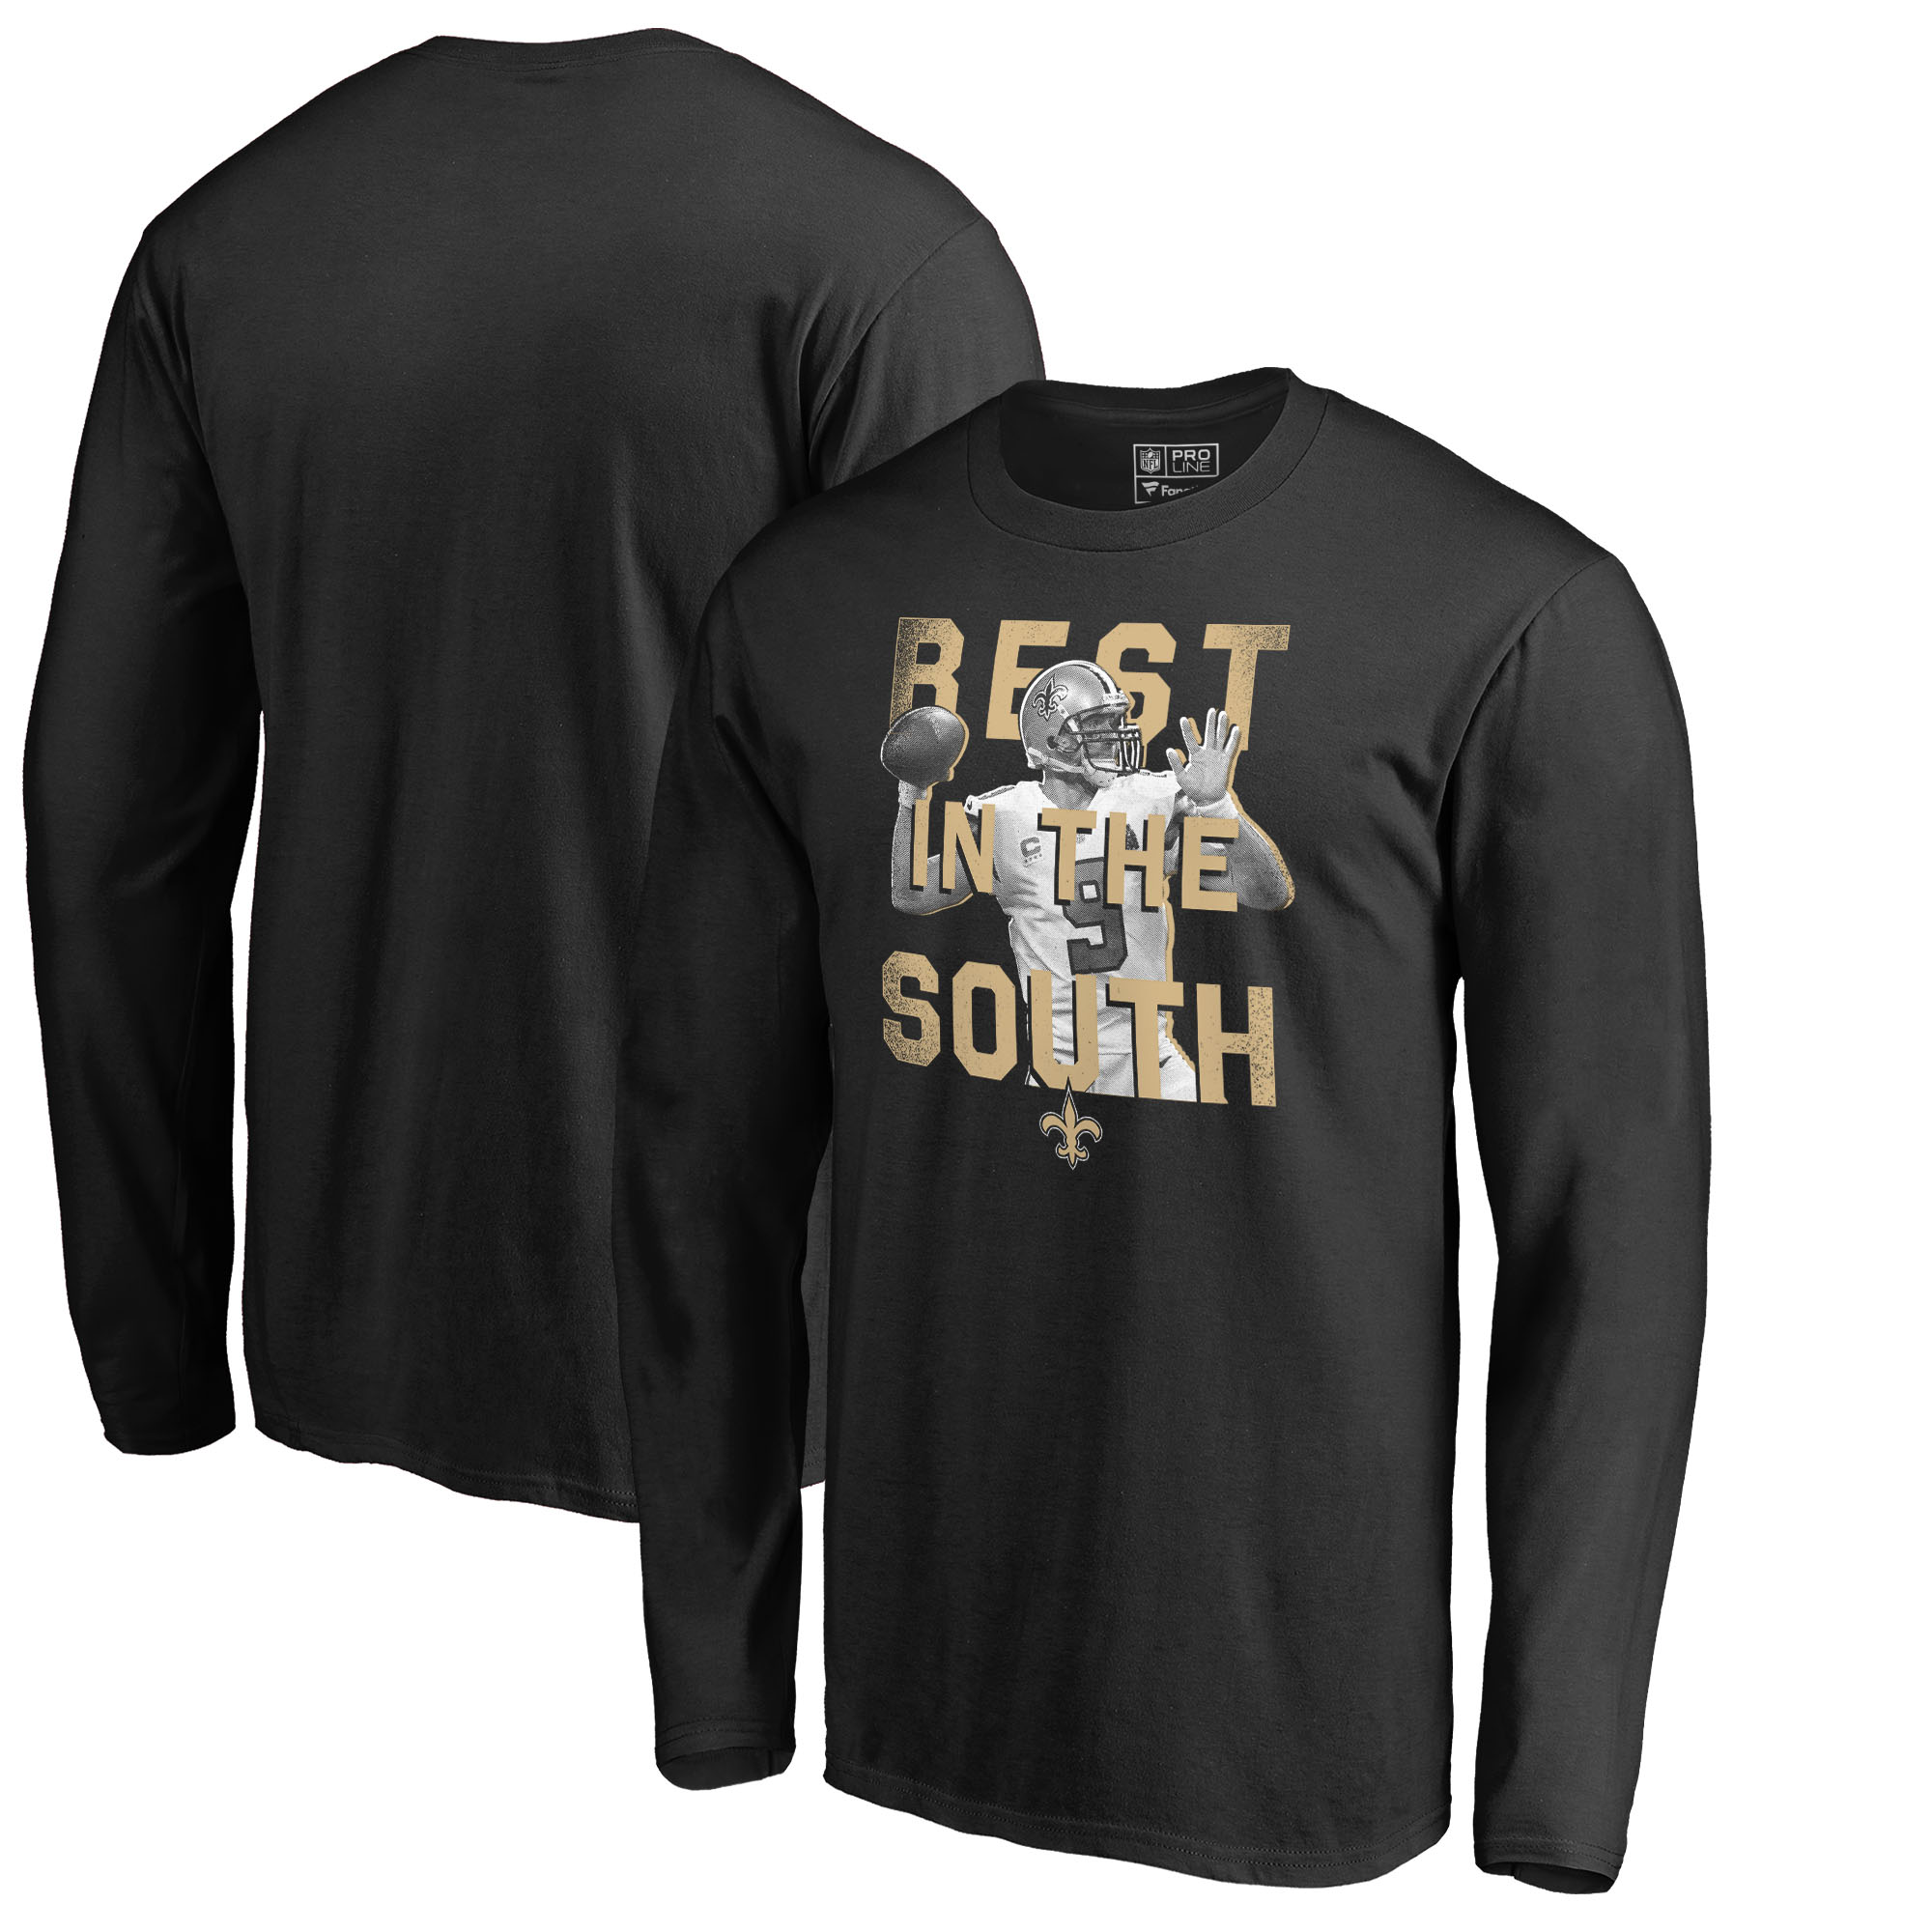 Drew Brees New Orleans Saints NFL Pro Line by Fanatics Branded Hero Long Sleeve T-Shirt - Black